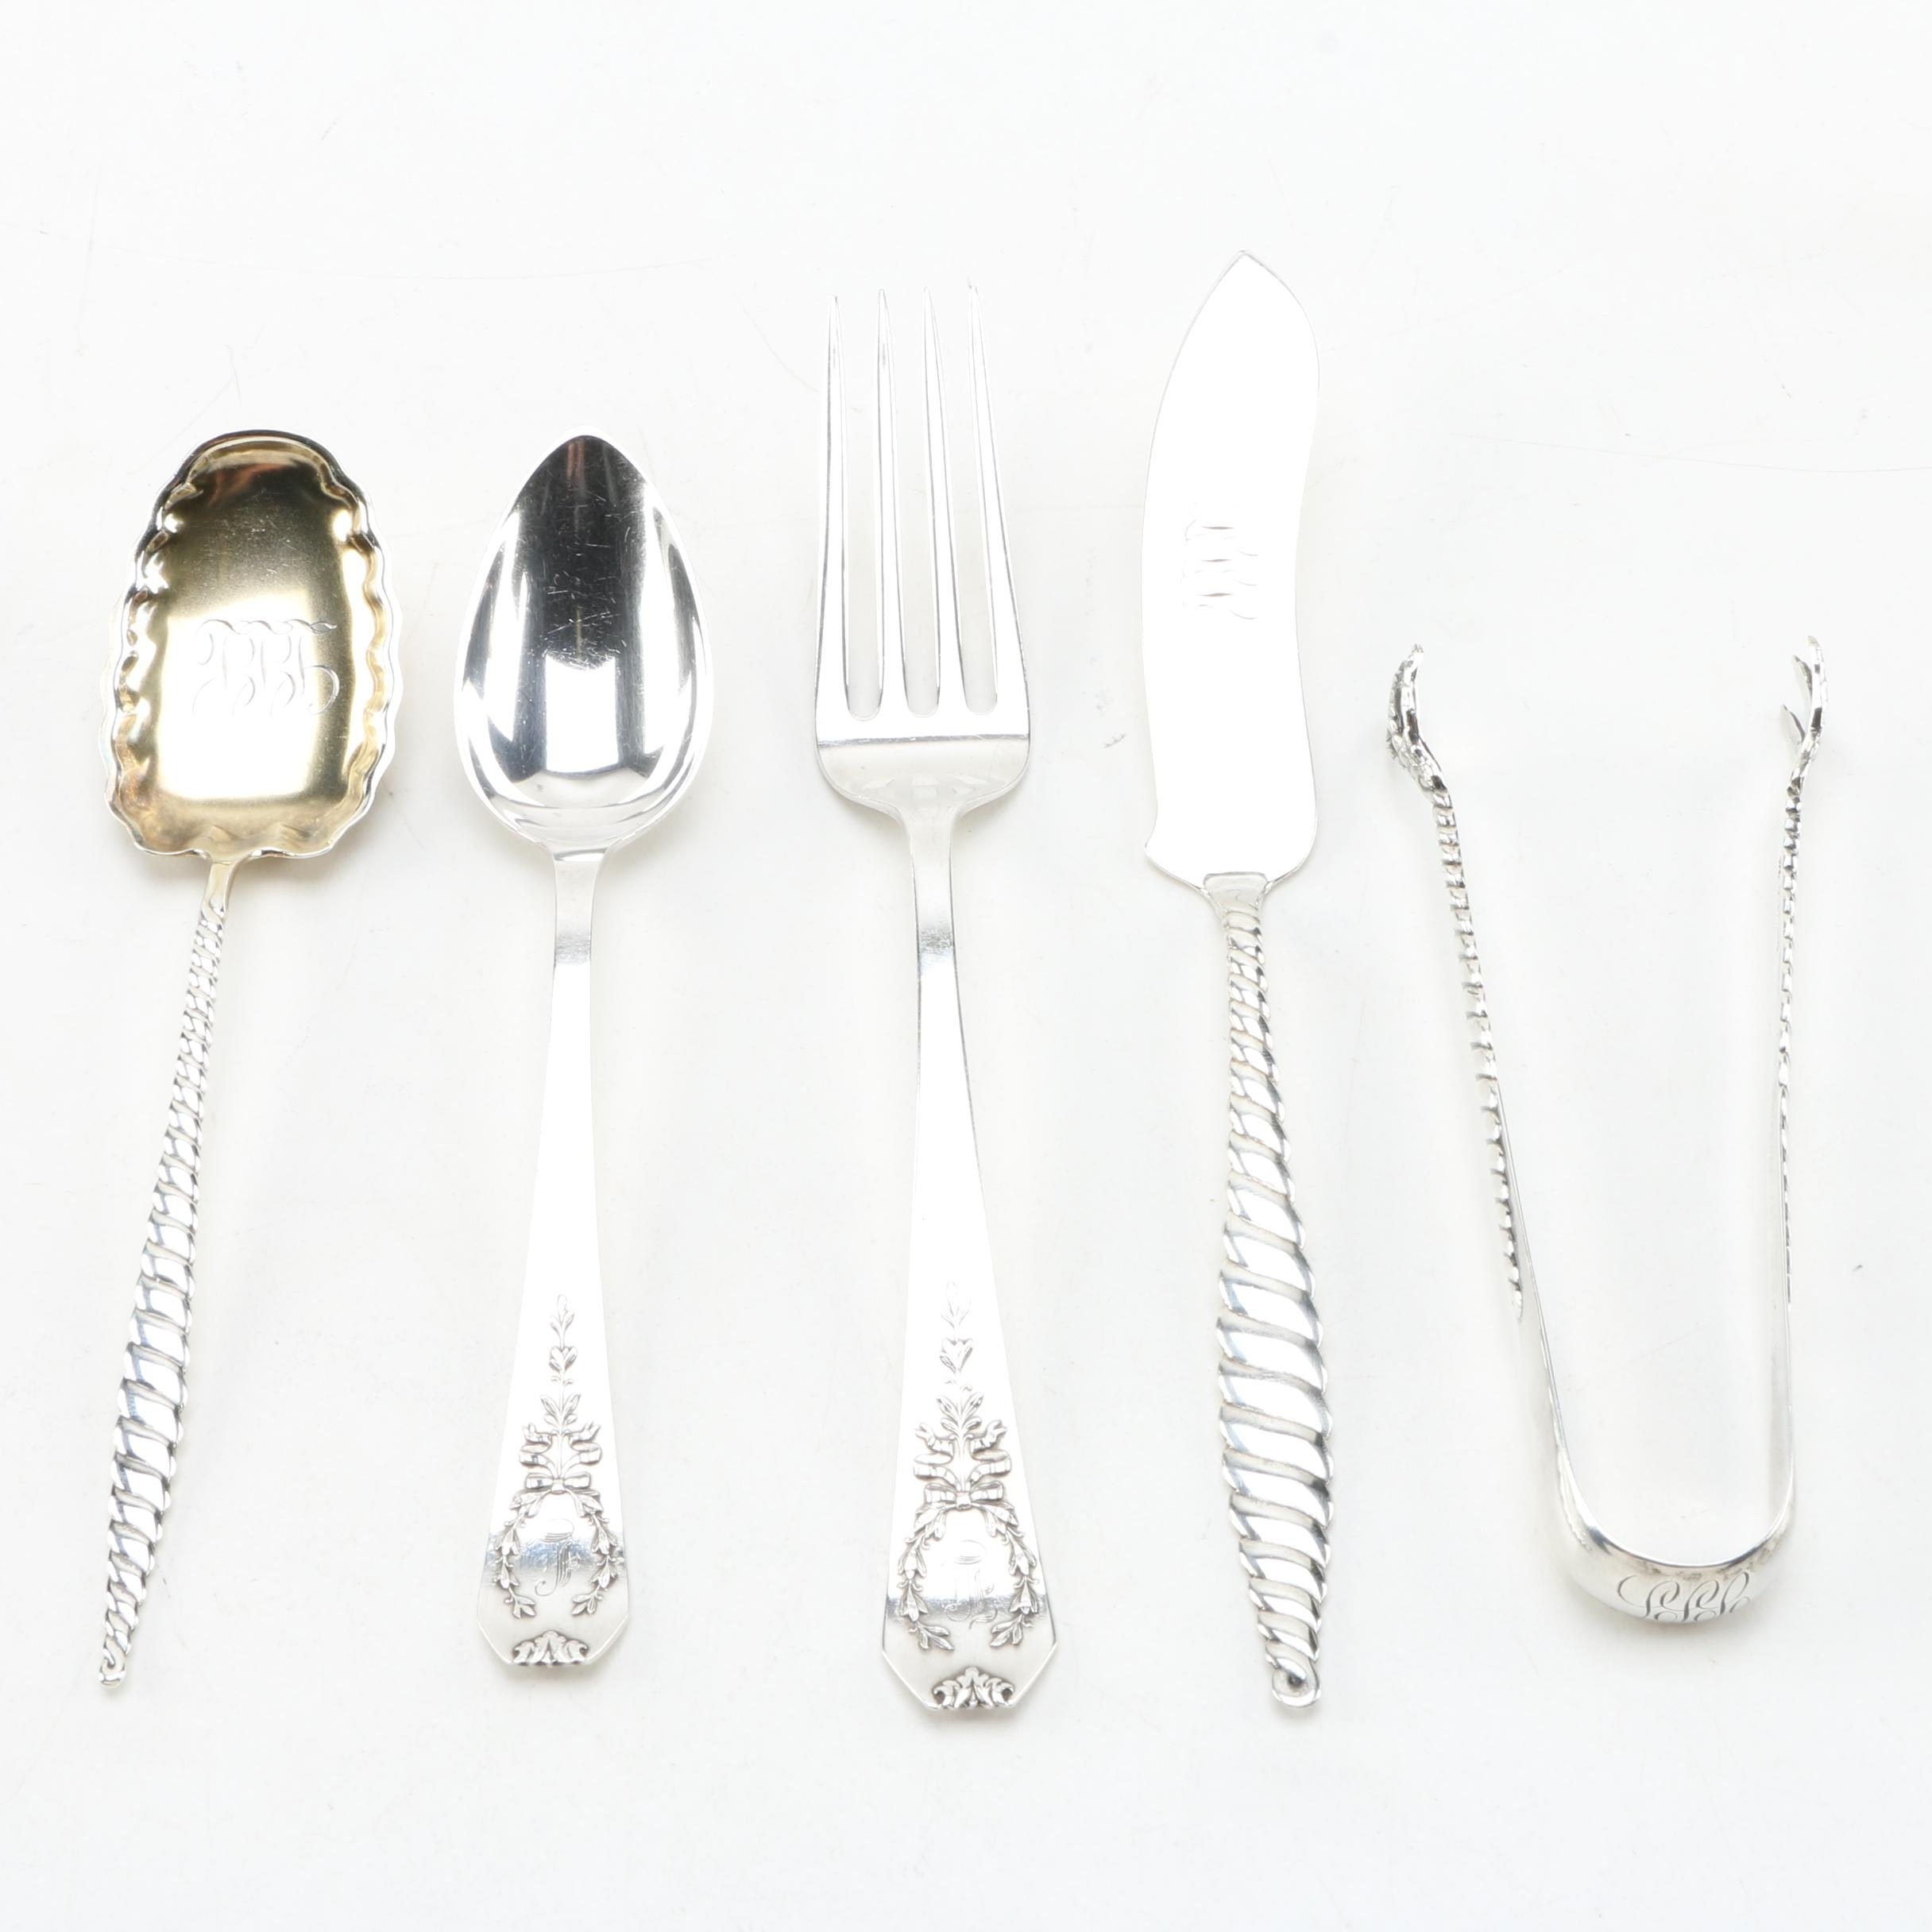 """Whiting Mfg. Co. Sterling Silver Utensils Including """"Oval Twist"""""""